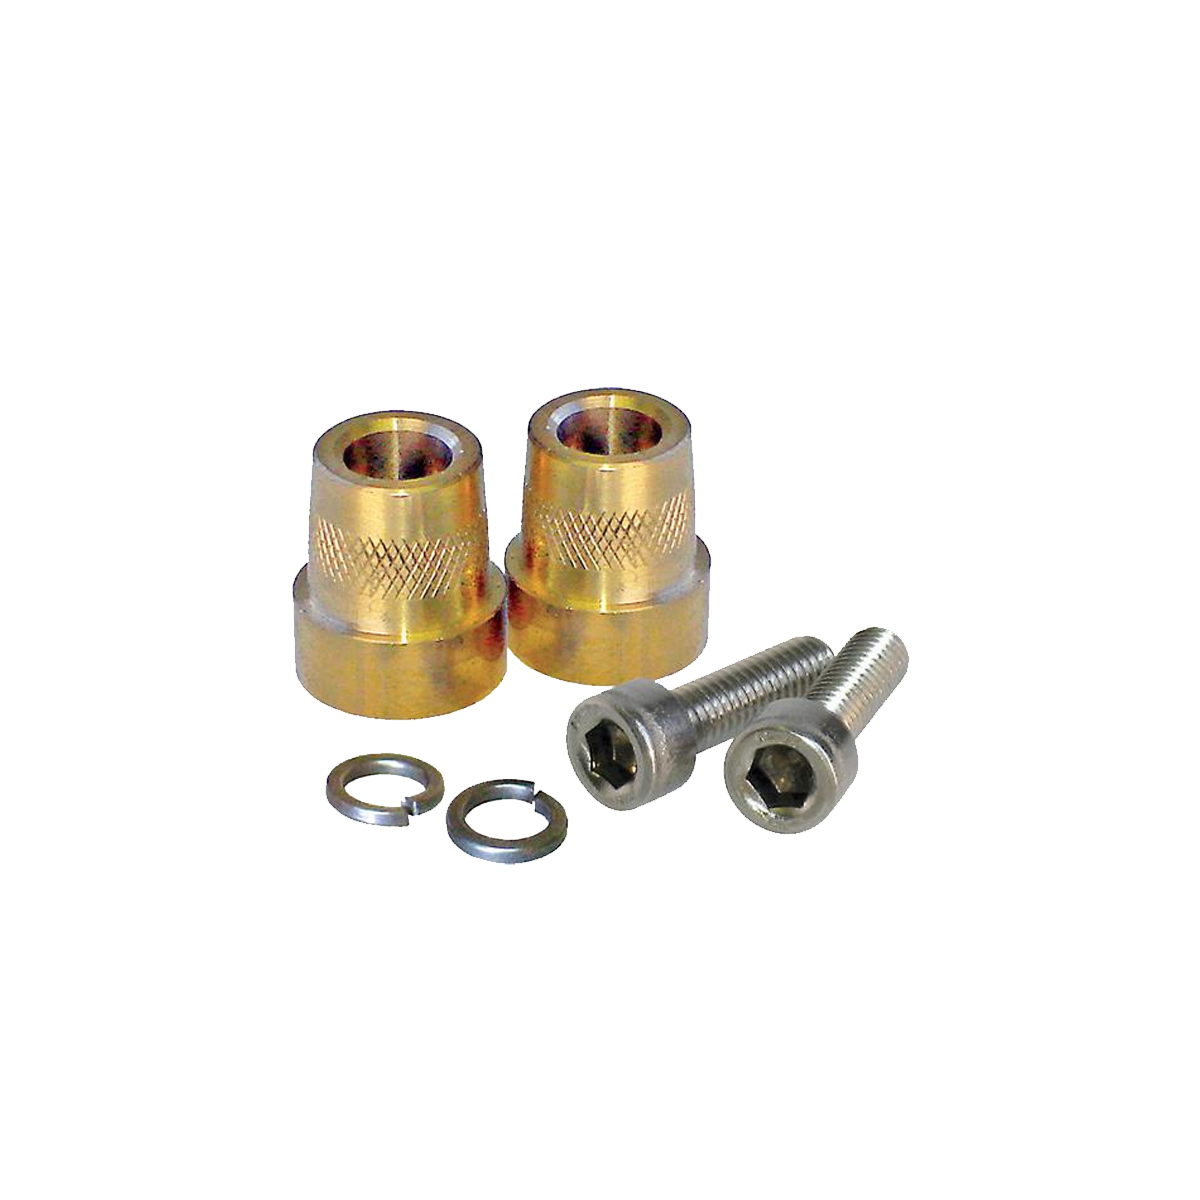 M6 AUTO Brass Battery Terminal Posts